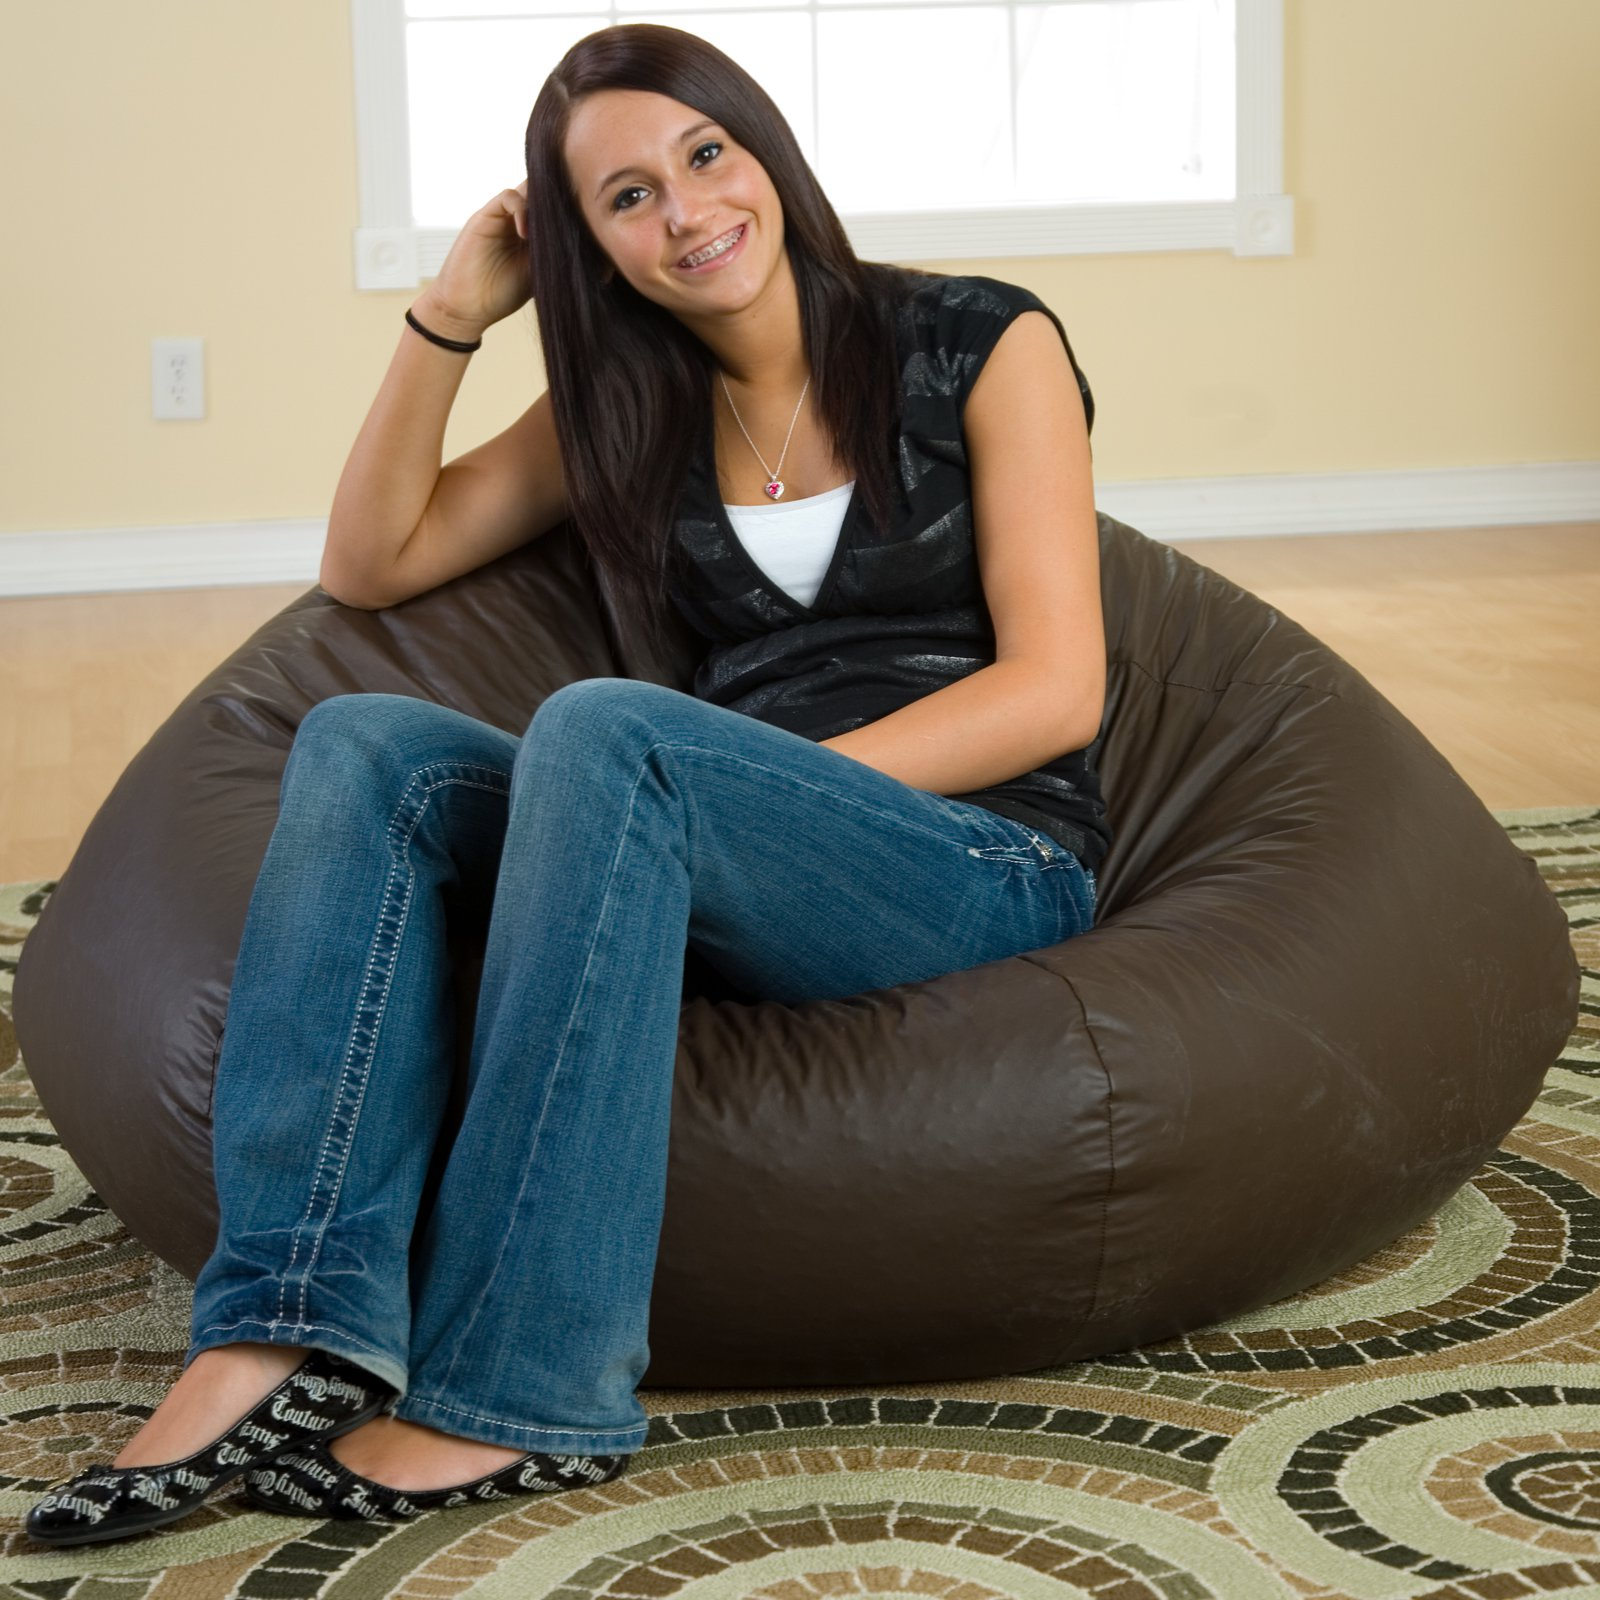 Vinyl Bean Bag Chairs Gold Medal Extra Large 140